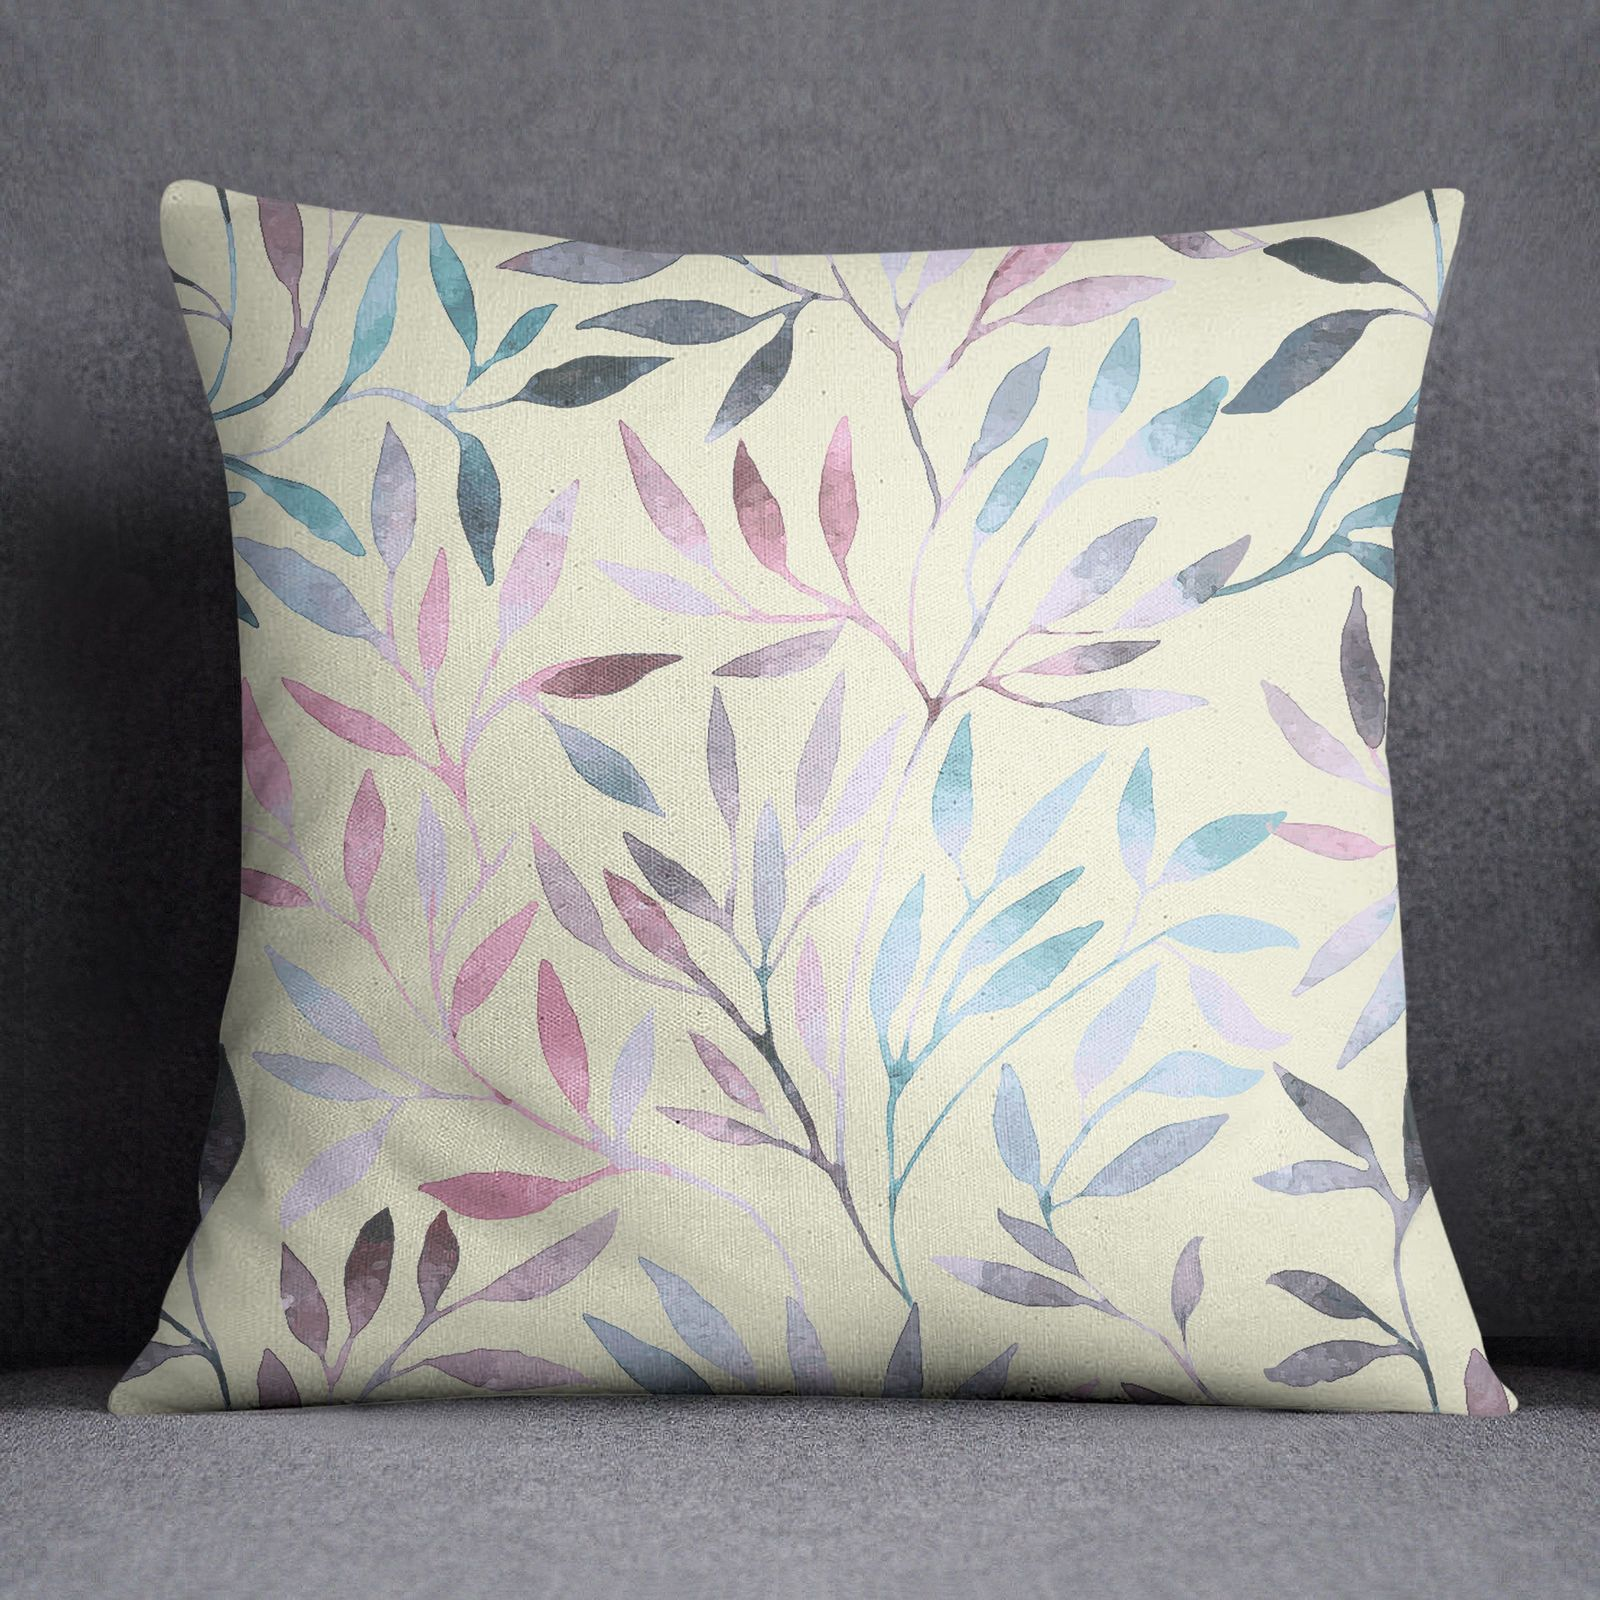 Ssassy decorative leaves printed cushion cover beige pillow case